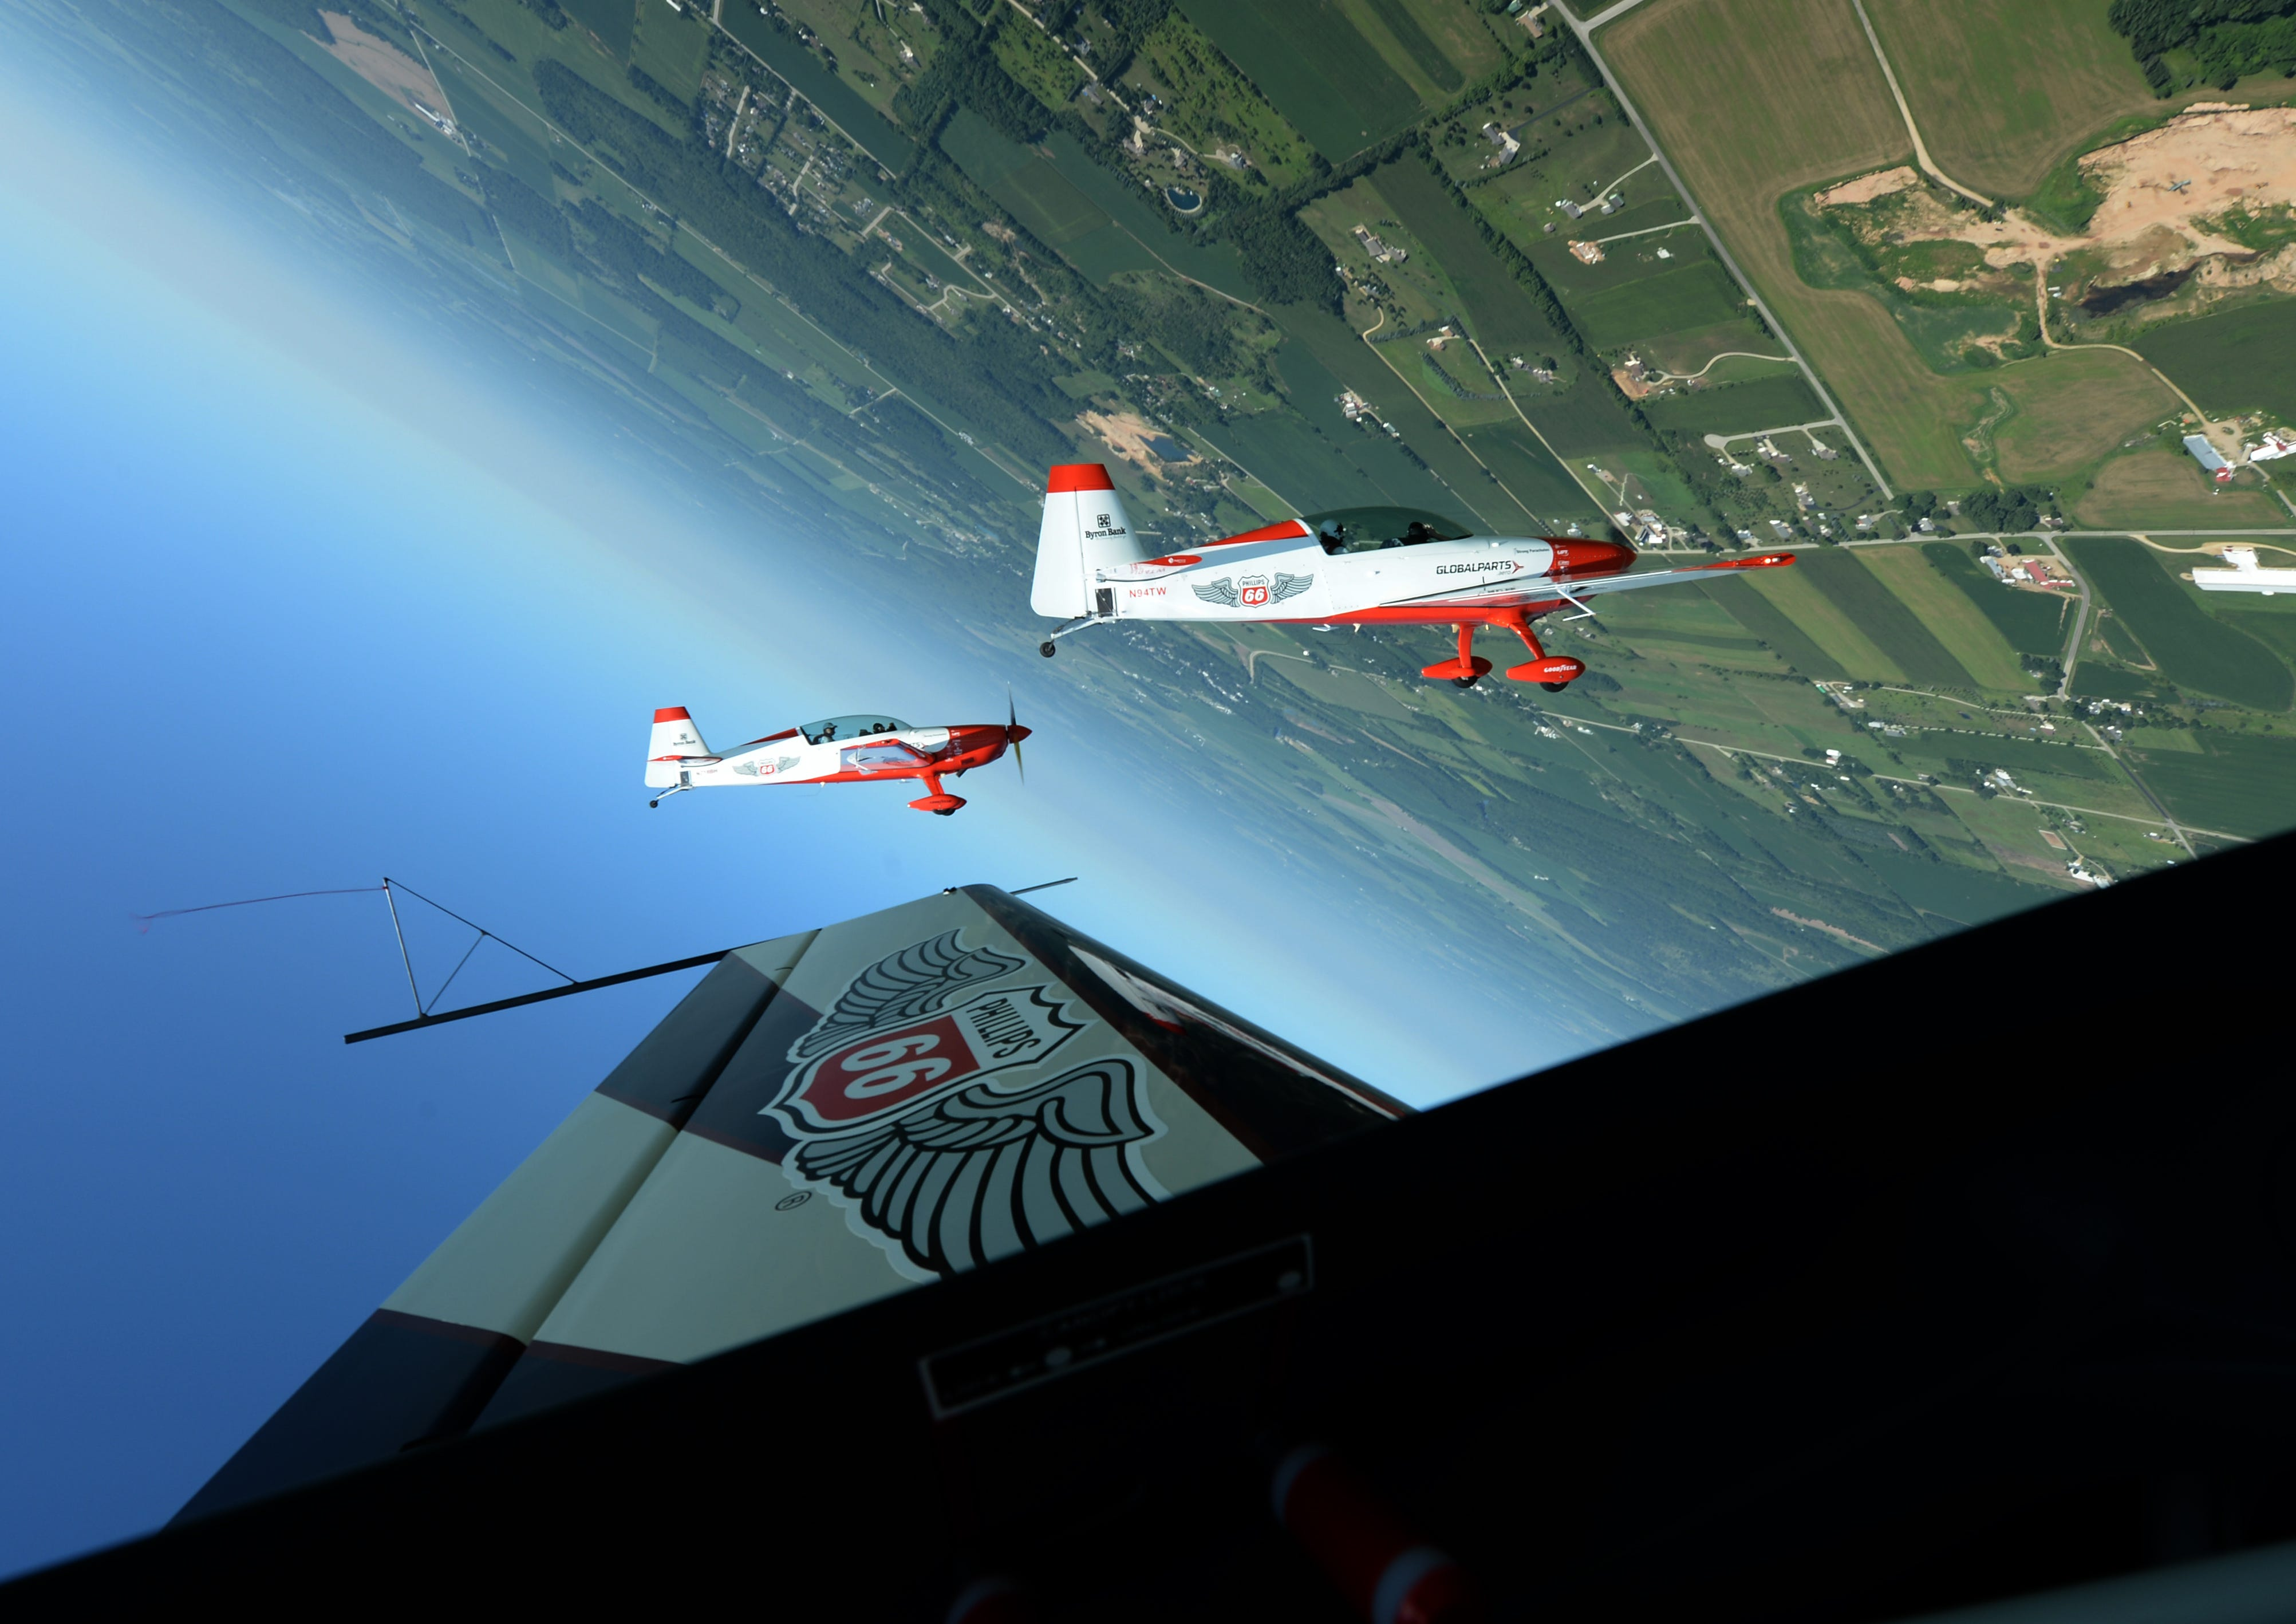 7/24/2018 Oshkosh Wisconsin, Airventure.     The Phillips 66 Aerostars come over the top of a loop while flying near Oshkosh Wisc. in their Extra 300L airplanes. The aerobatic team was in the area attending the Airventure airshow which runs through 7/2